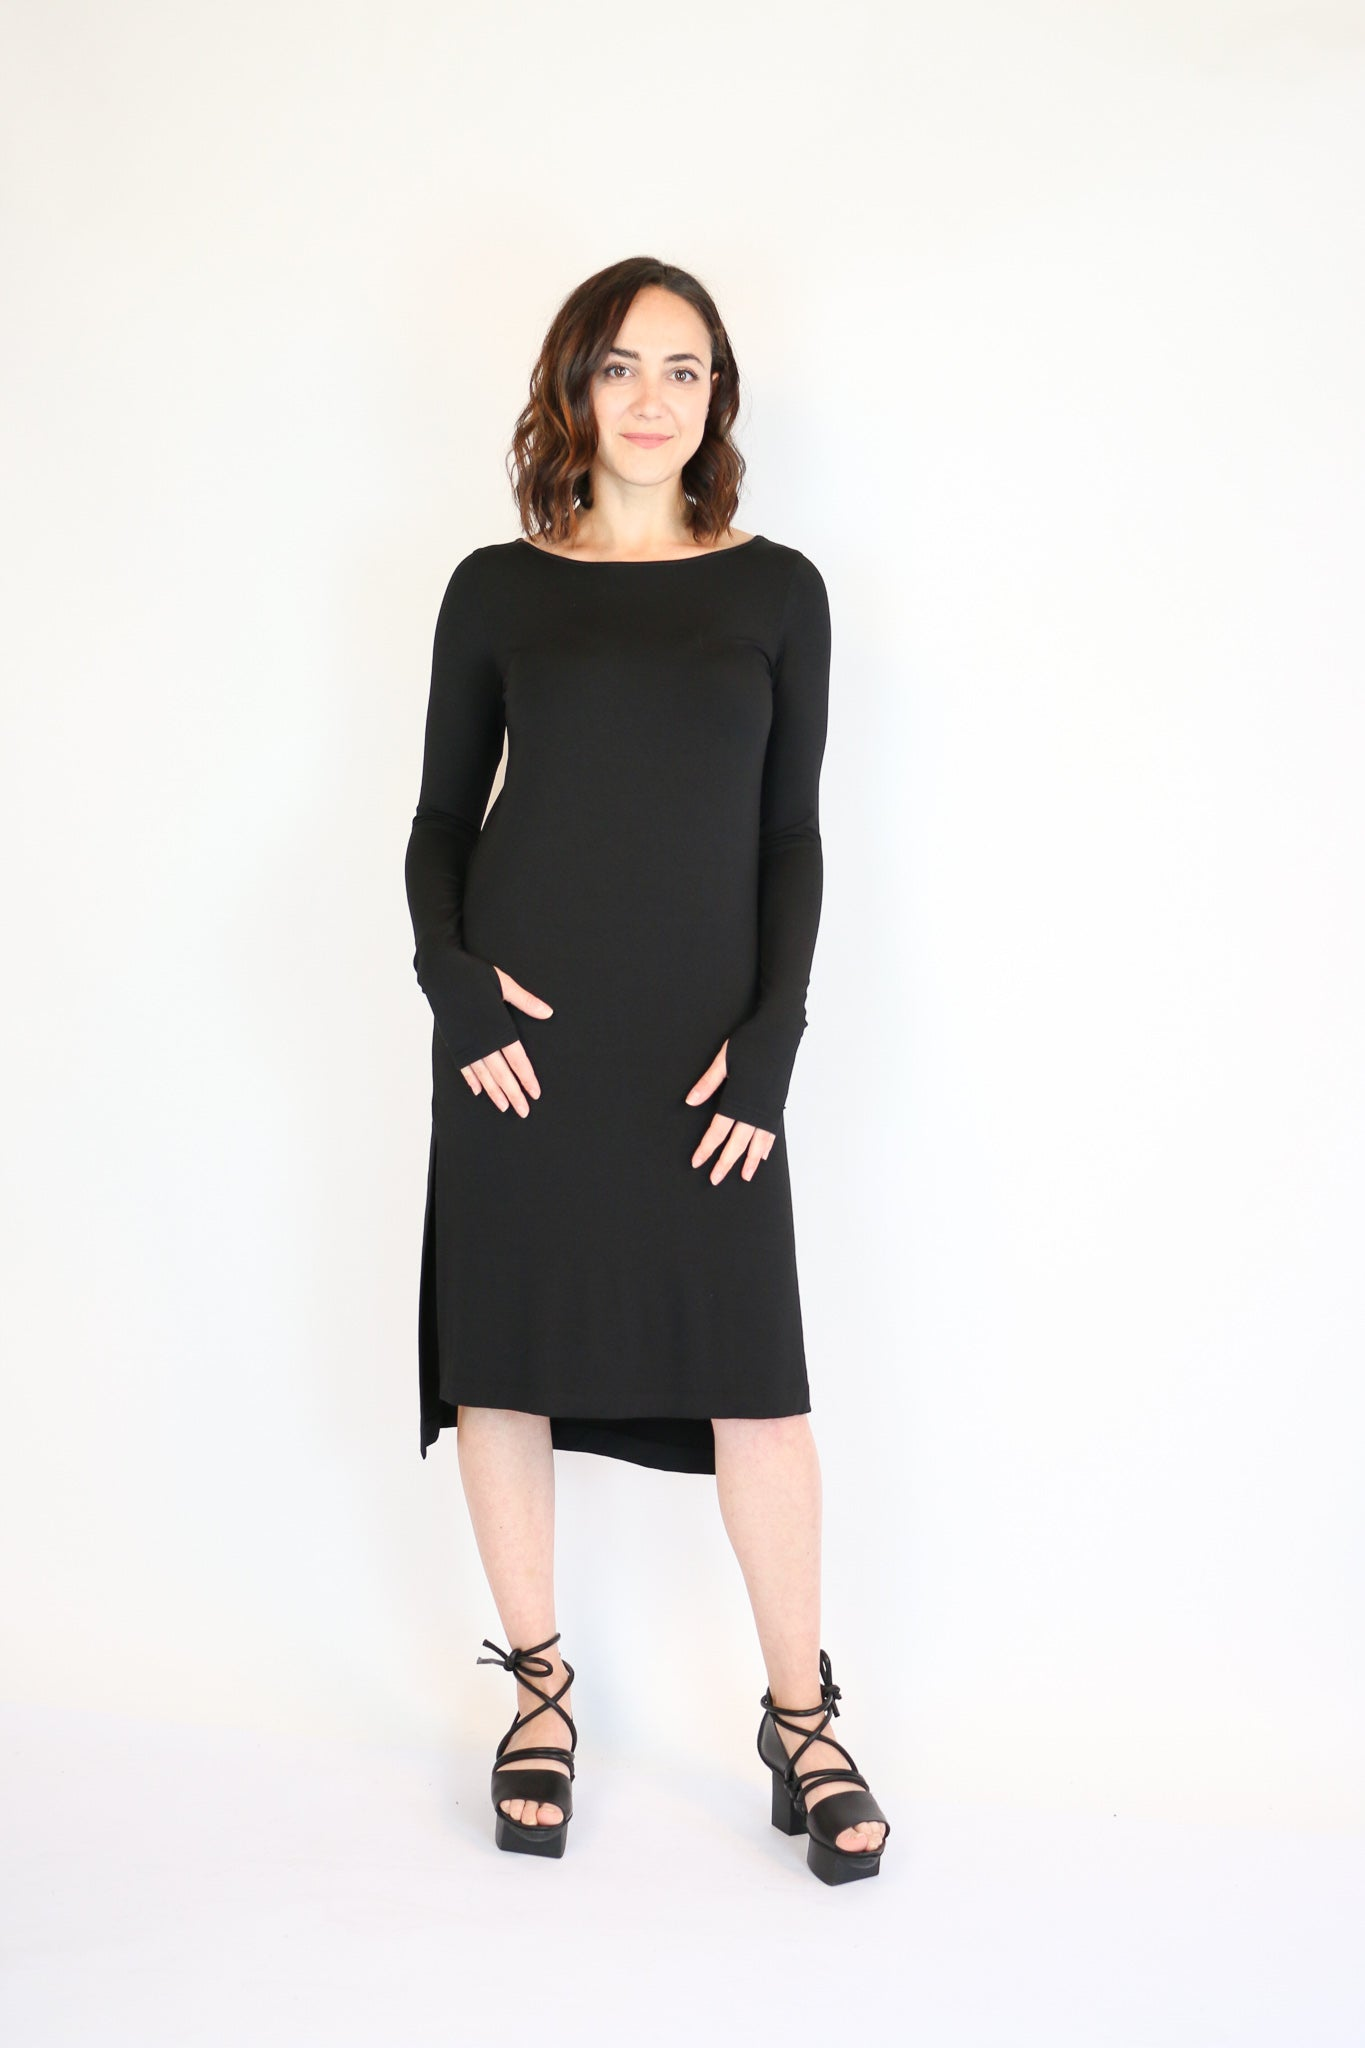 NY 77 Design Black Sheath Dress | ATELIER957